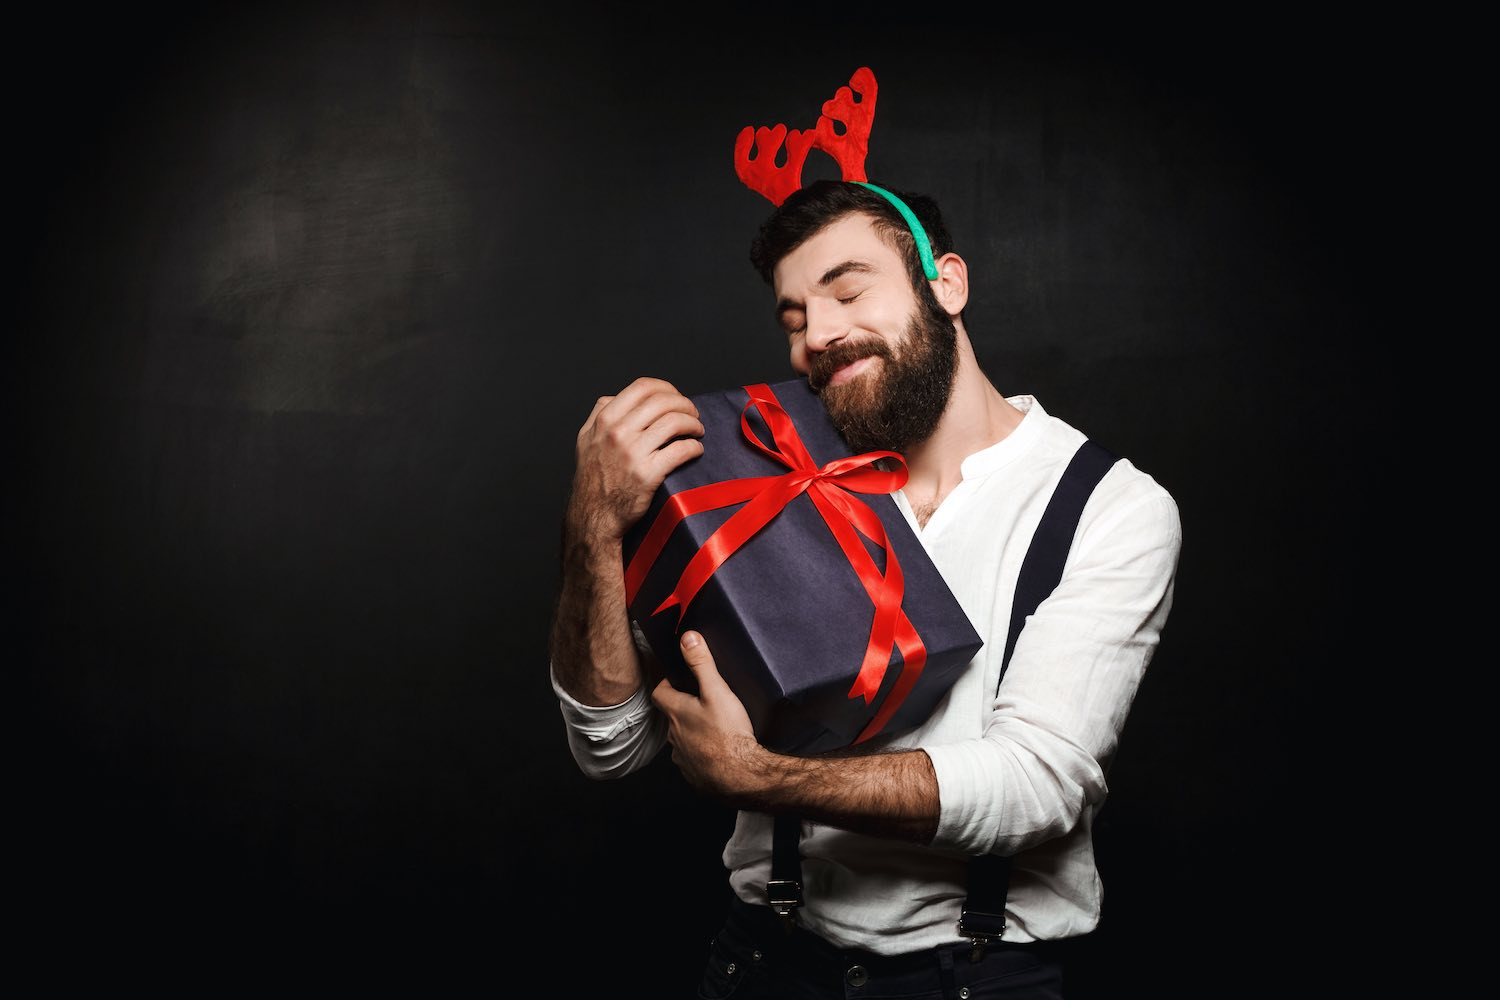 Top 10 Sports Christmas Gifts Guide